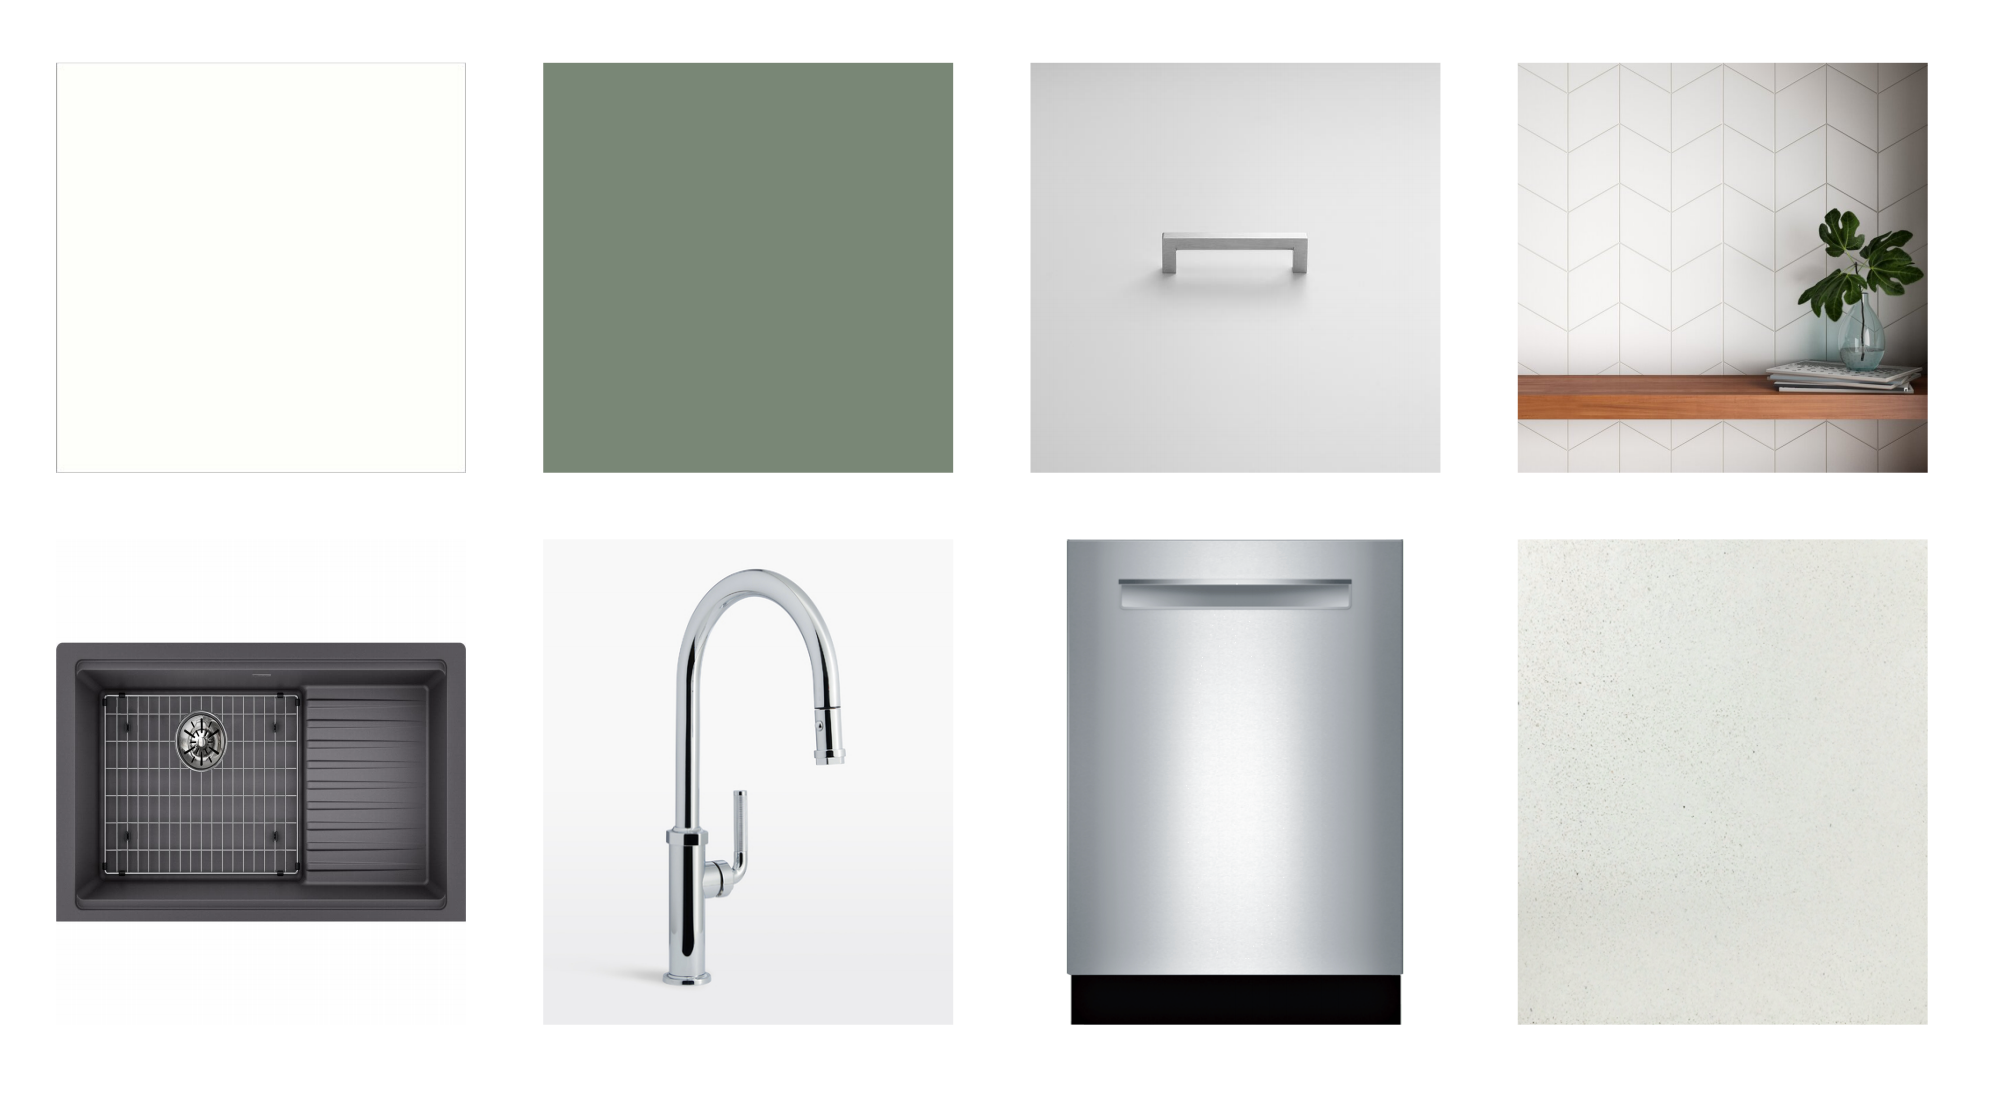 Organize your material choices with a shoppable moodboard from Beam.